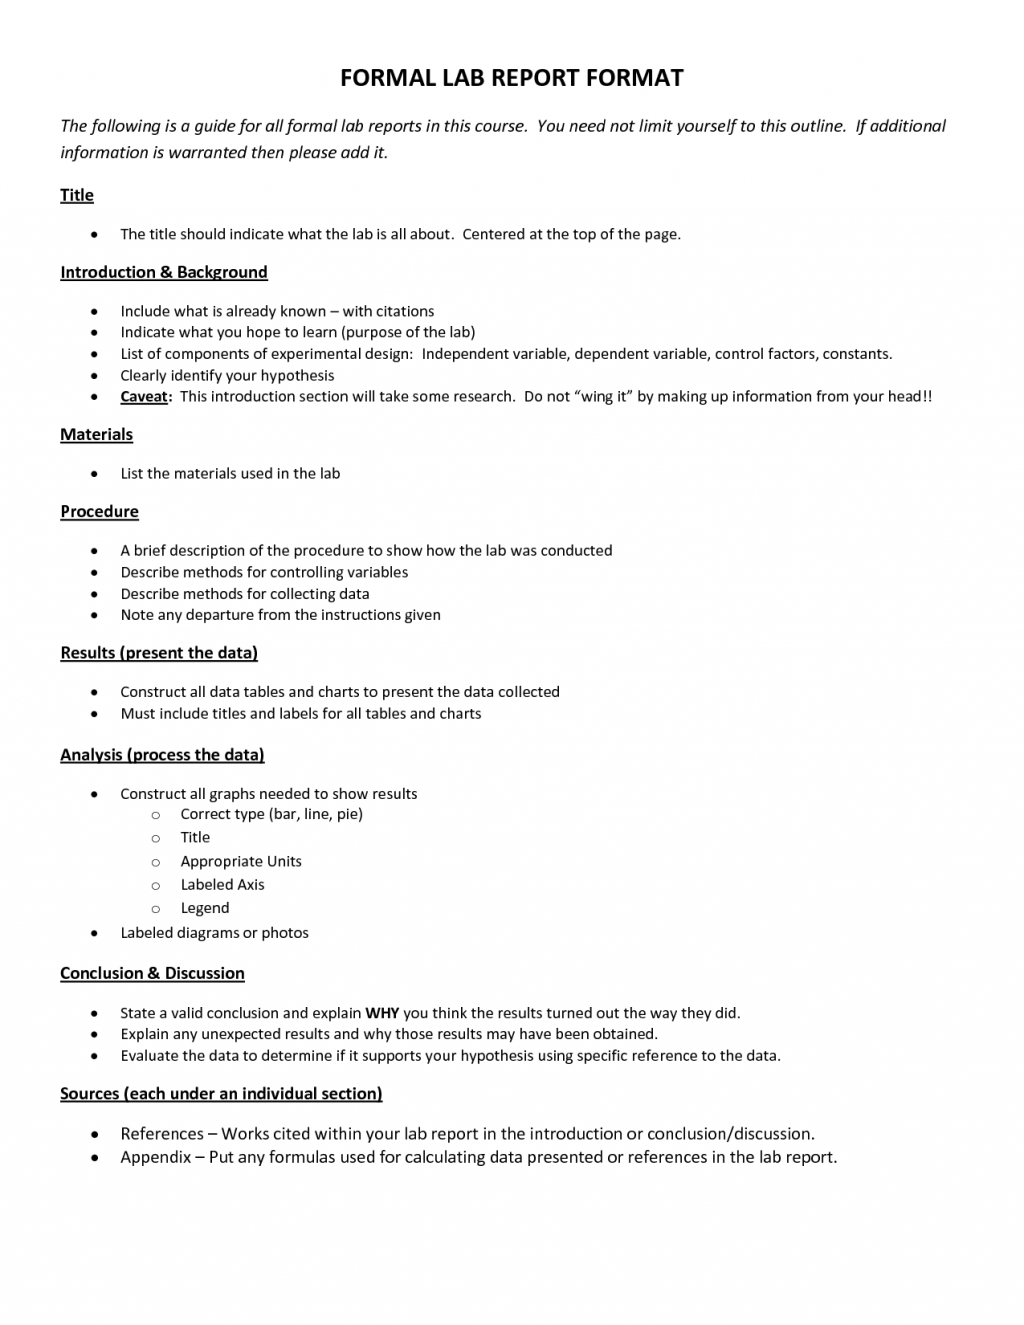 Formal Lab Report Format Biological Science Picture